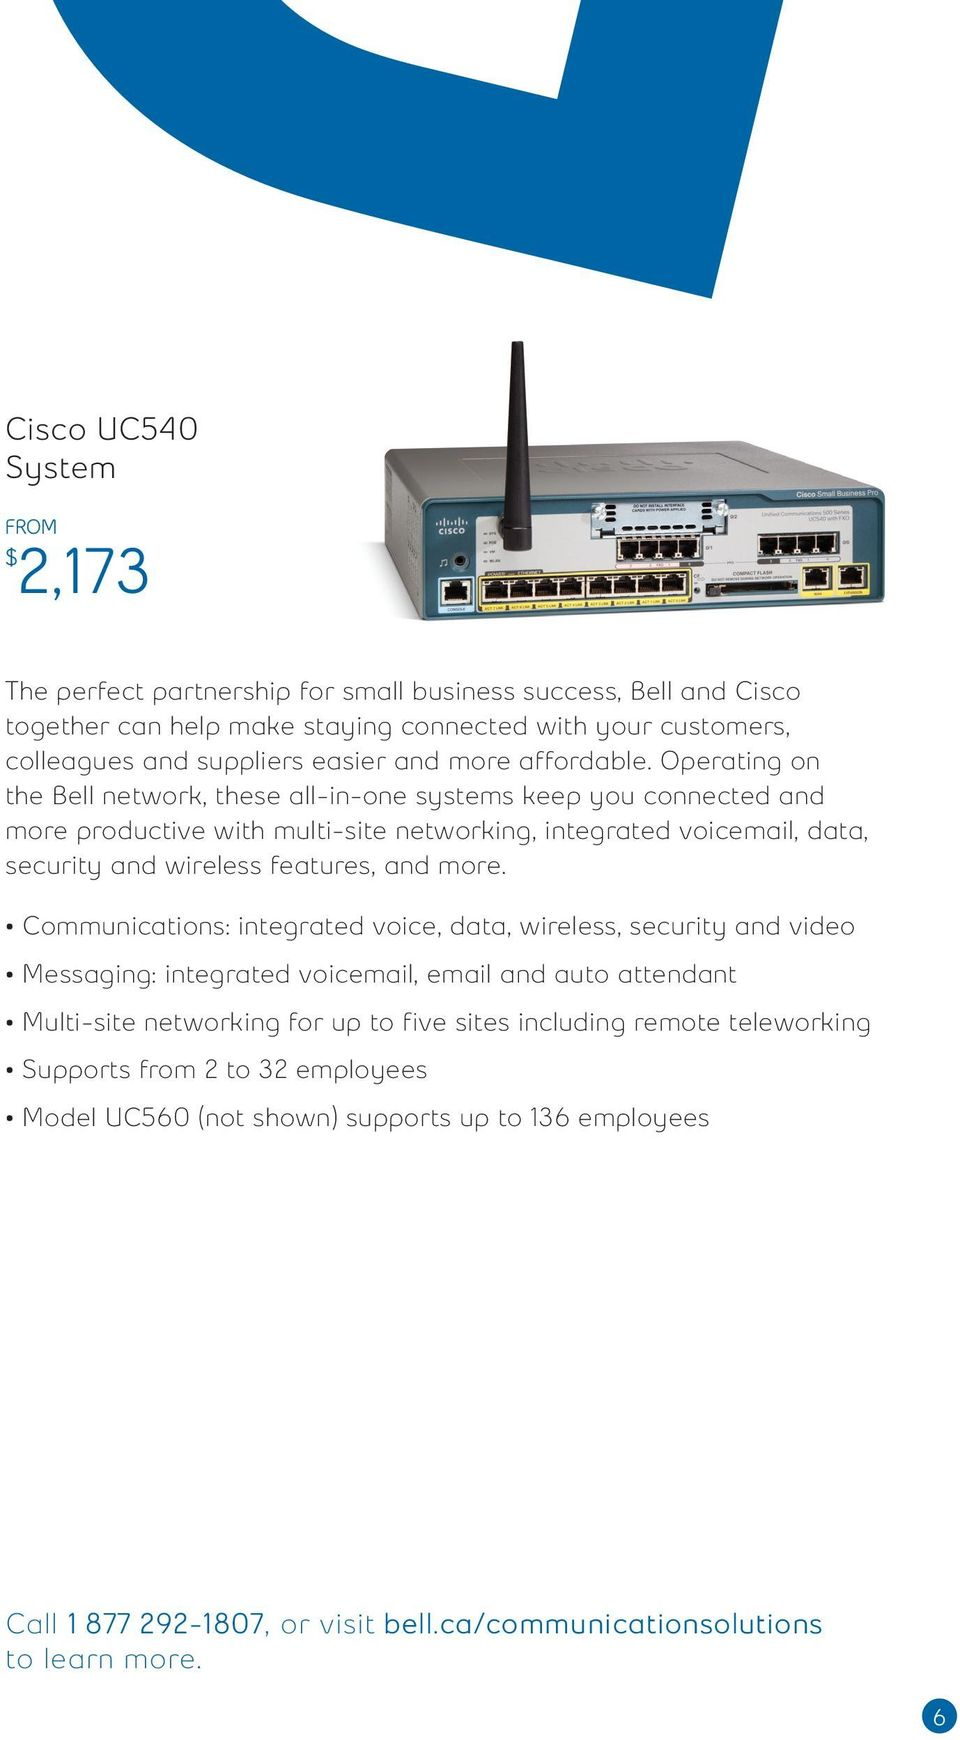 Operating on the Bell network, these all-in-one systems keep you connected and more productive with multi-site networking, integrated voicemail, data, security and wireless features, and more.